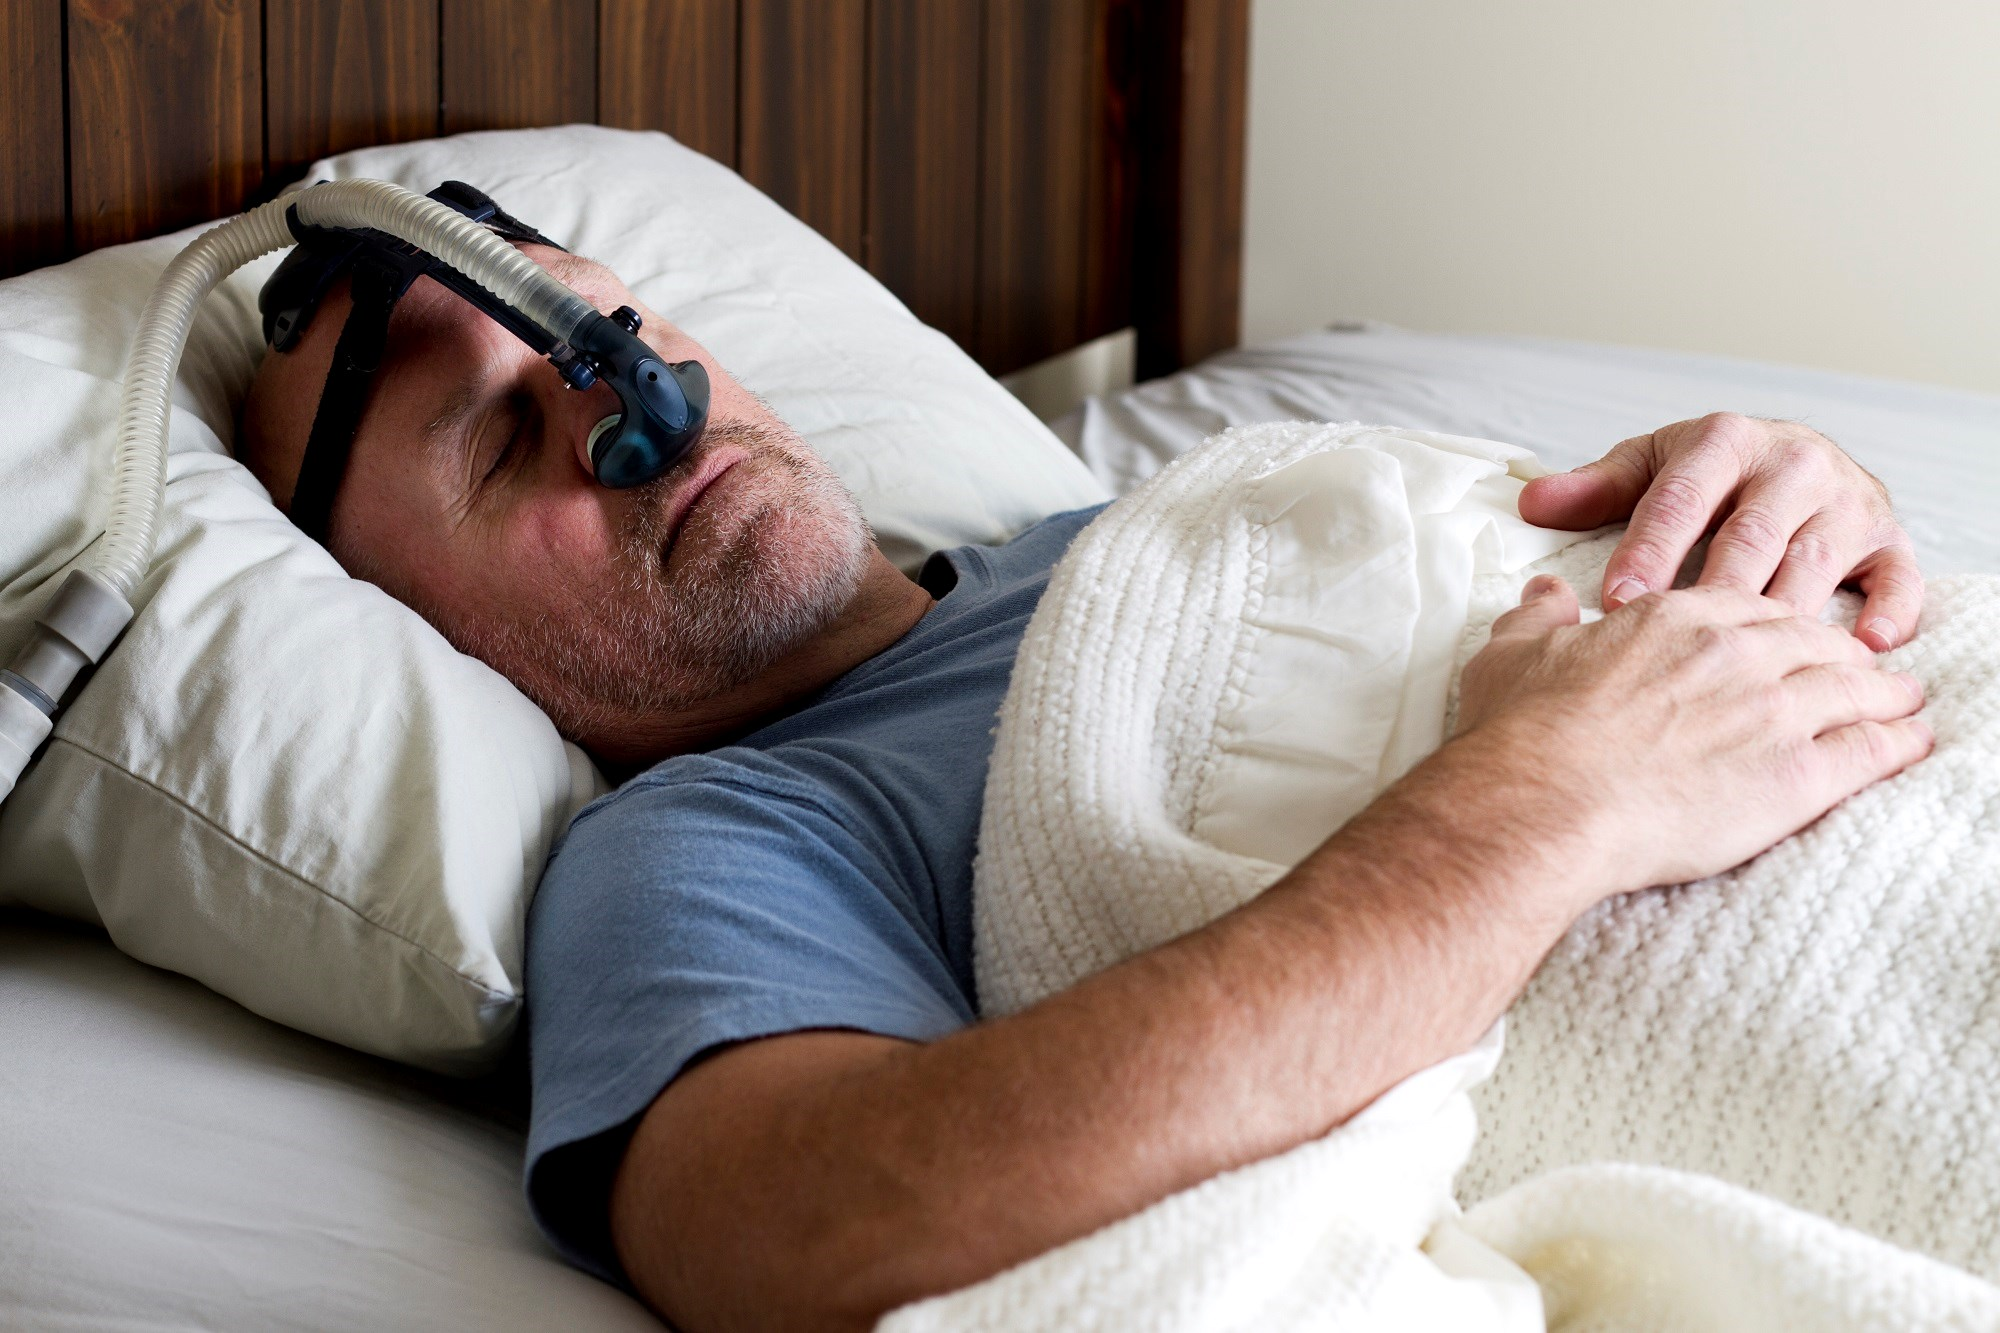 High Prevalence of Obstructive Sleep Apnea Syndrome May Favor Screening in Diabetes